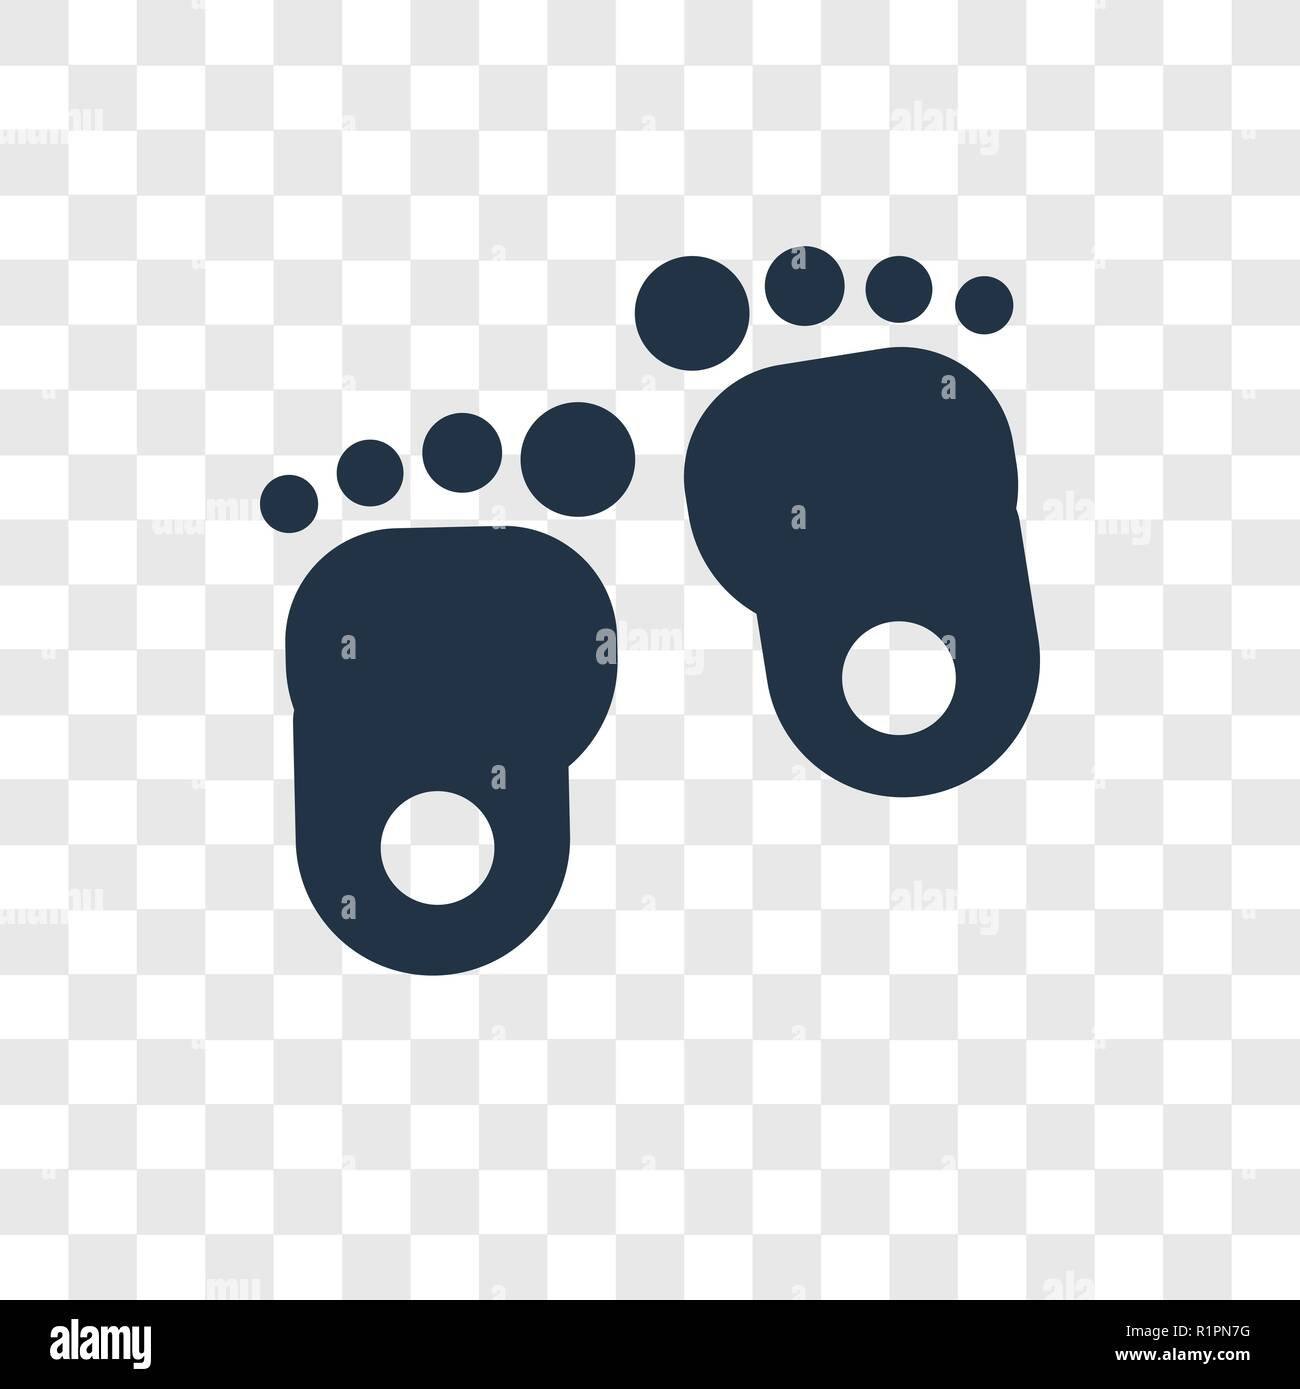 feet vector icon isolated on transparent background feet transparency logo concept stock vector image art alamy https www alamy com feet vector icon isolated on transparent background feet transparency logo concept image224849060 html